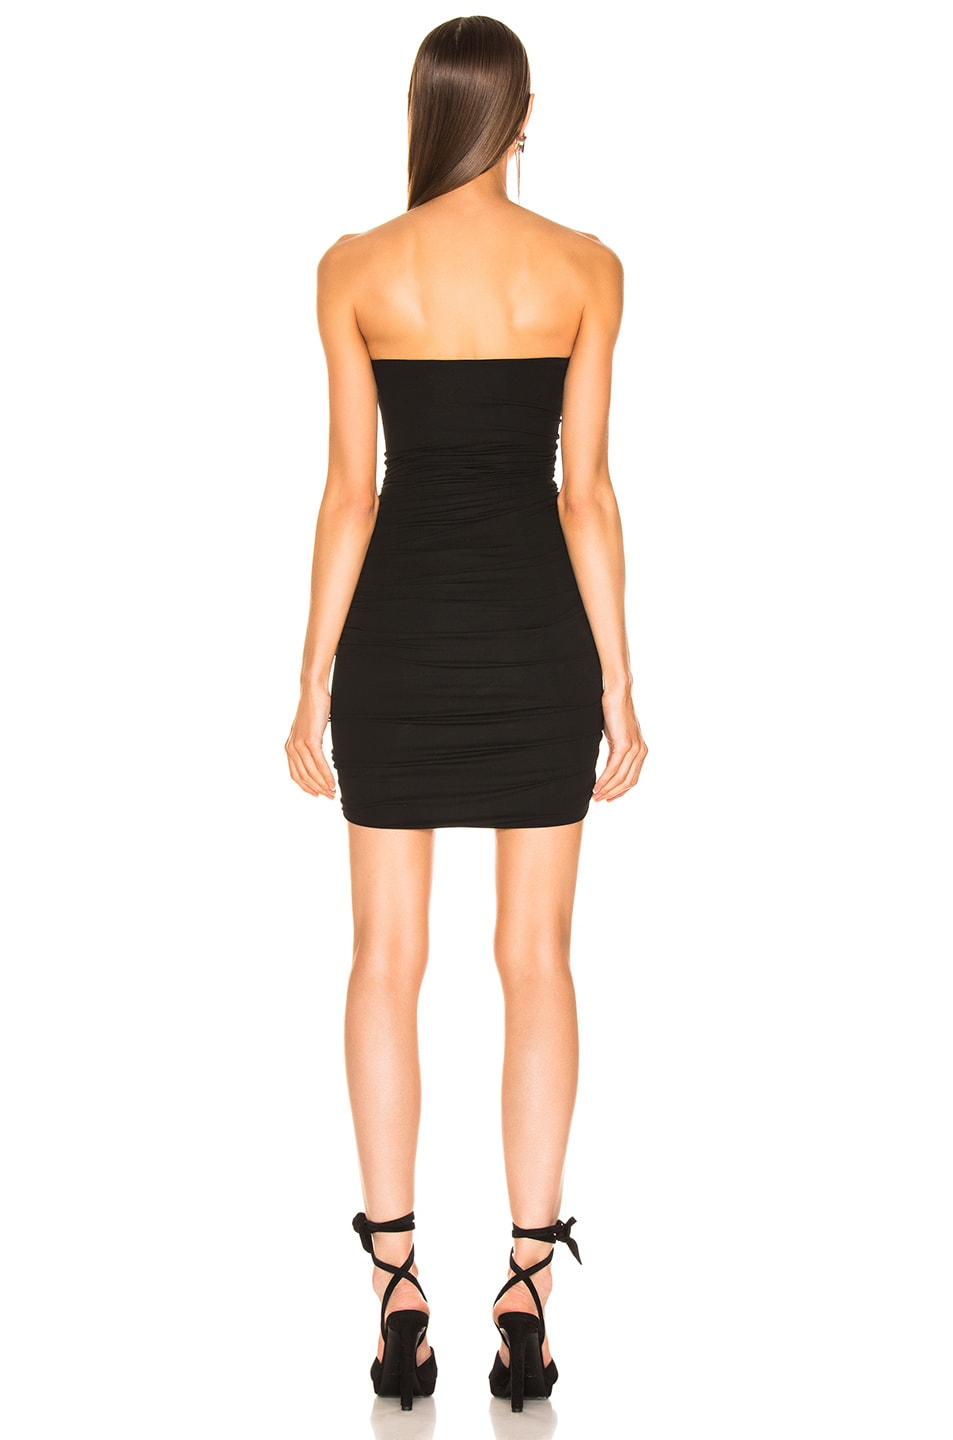 Alexandre Vauthier Dresses Strapless Mini Dress